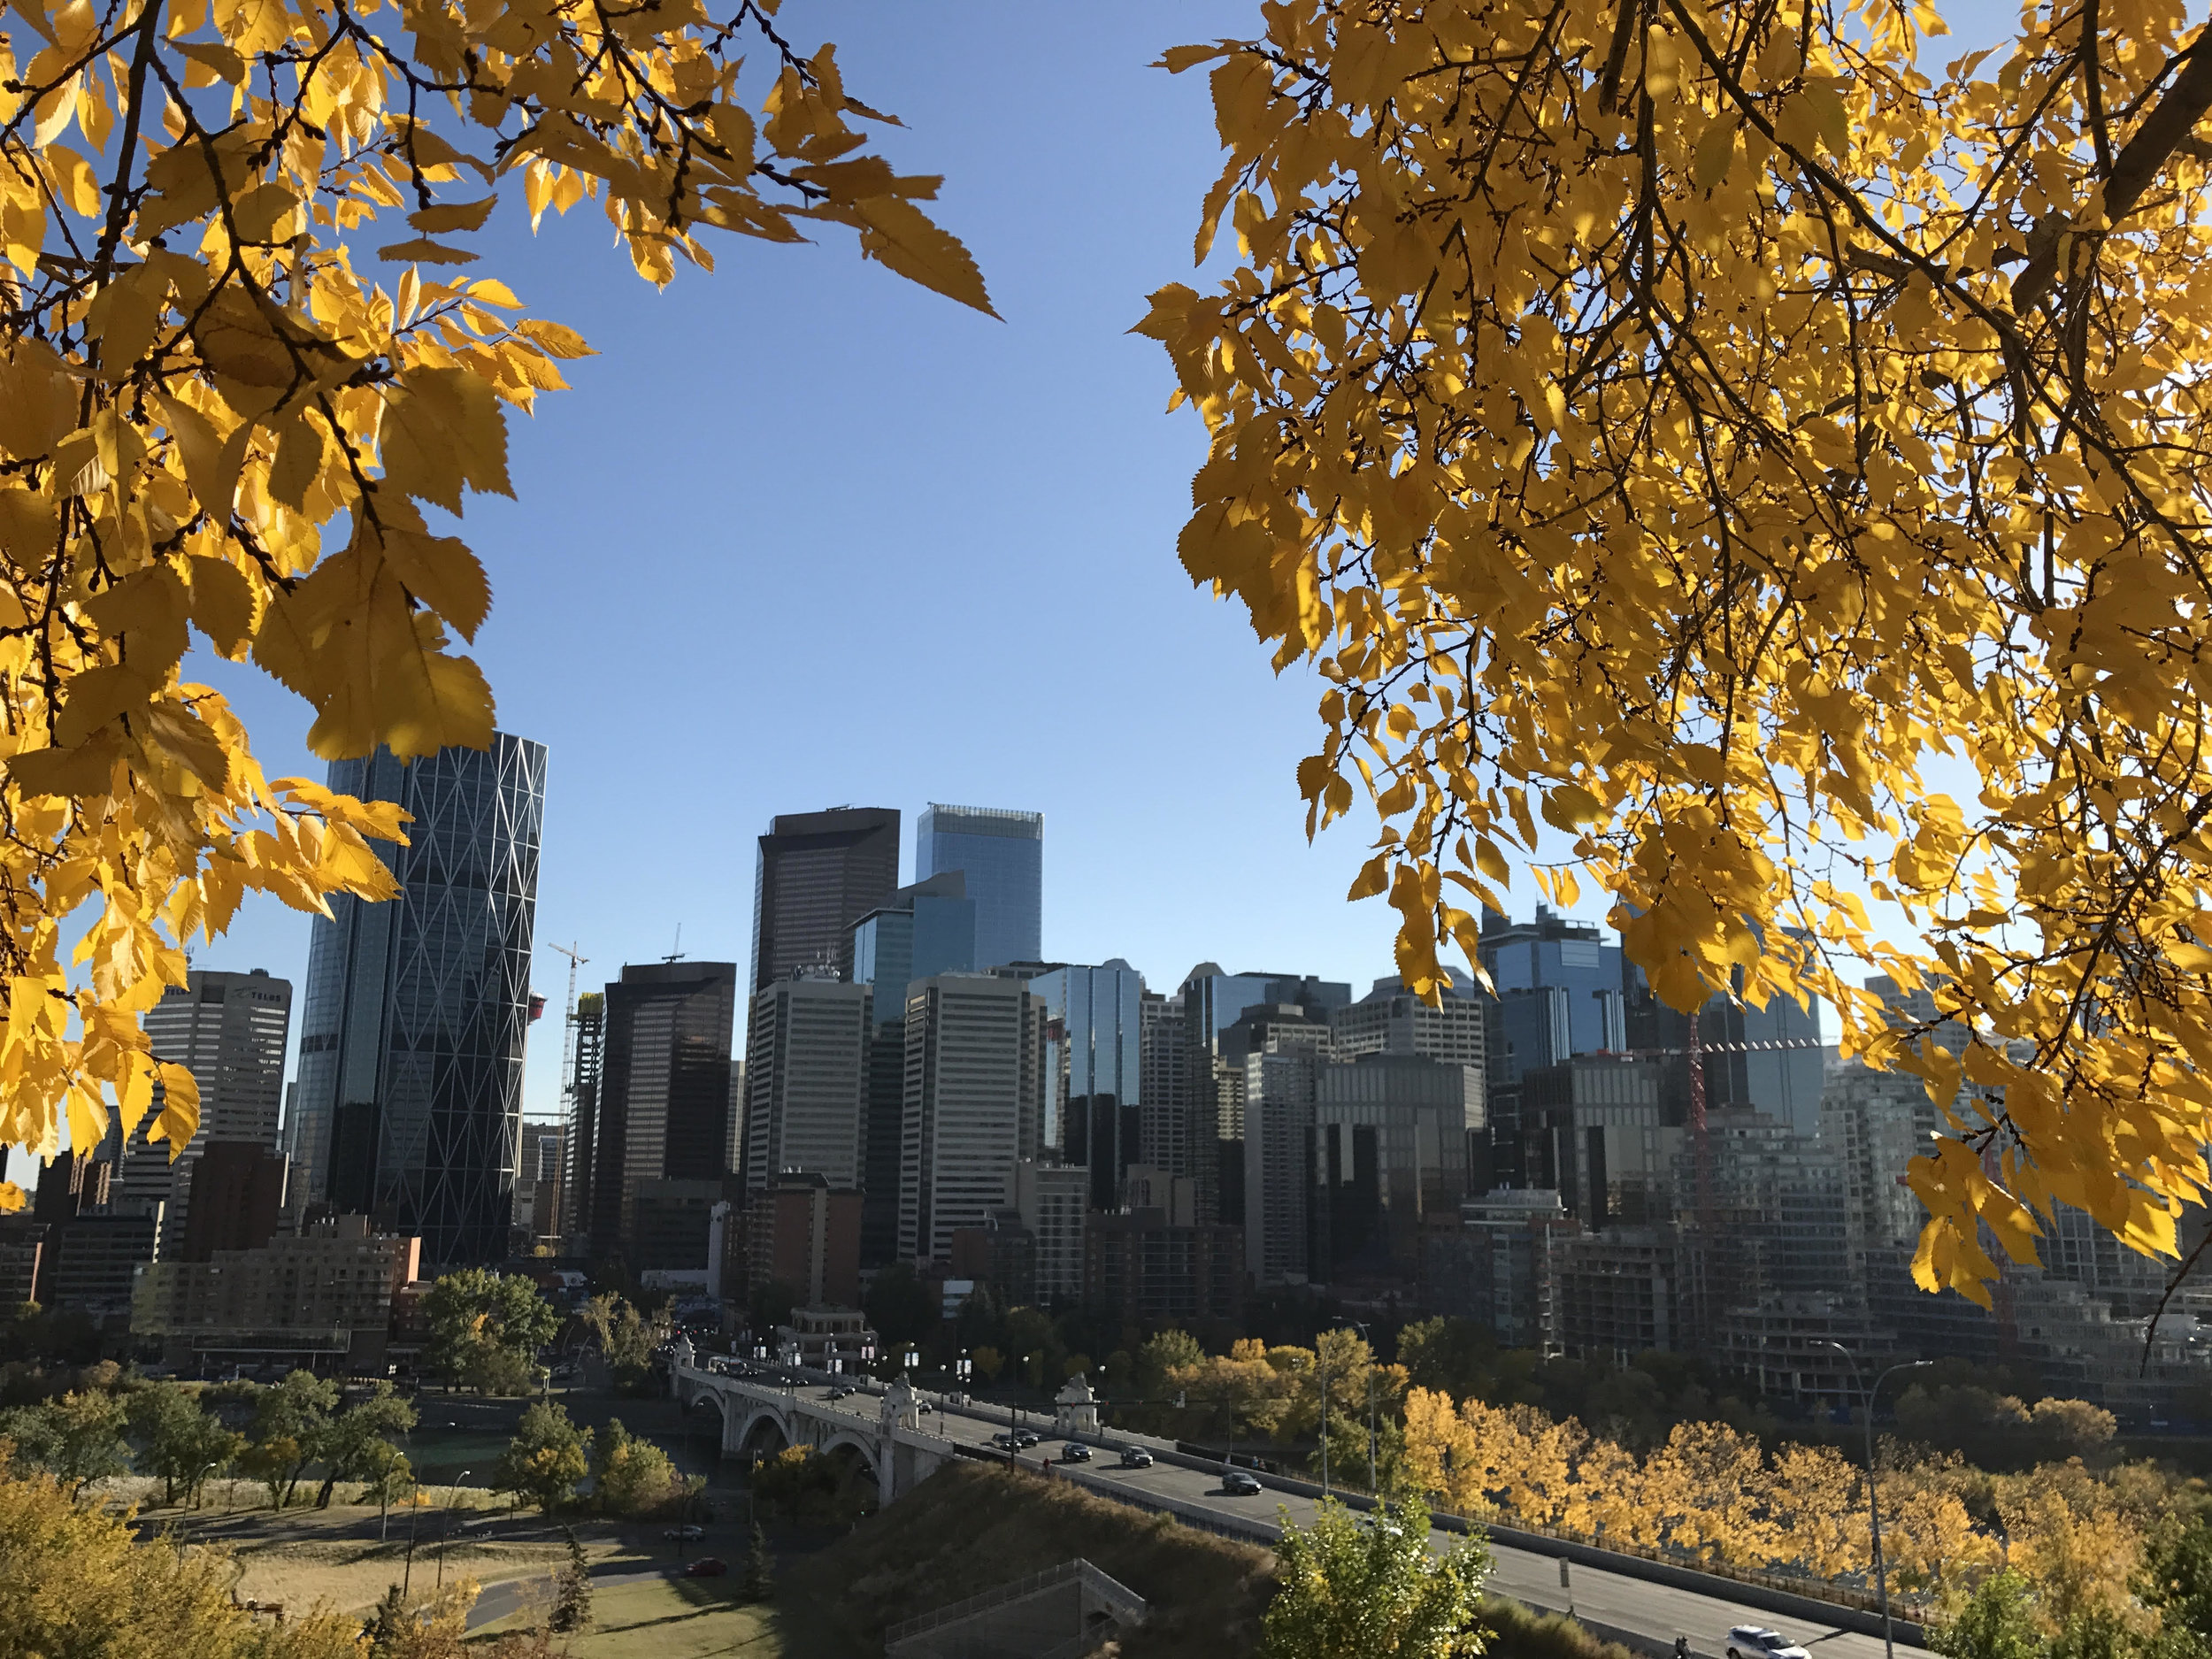 View to downtown Calgary in fall. Image Credit: Simon Greenwood